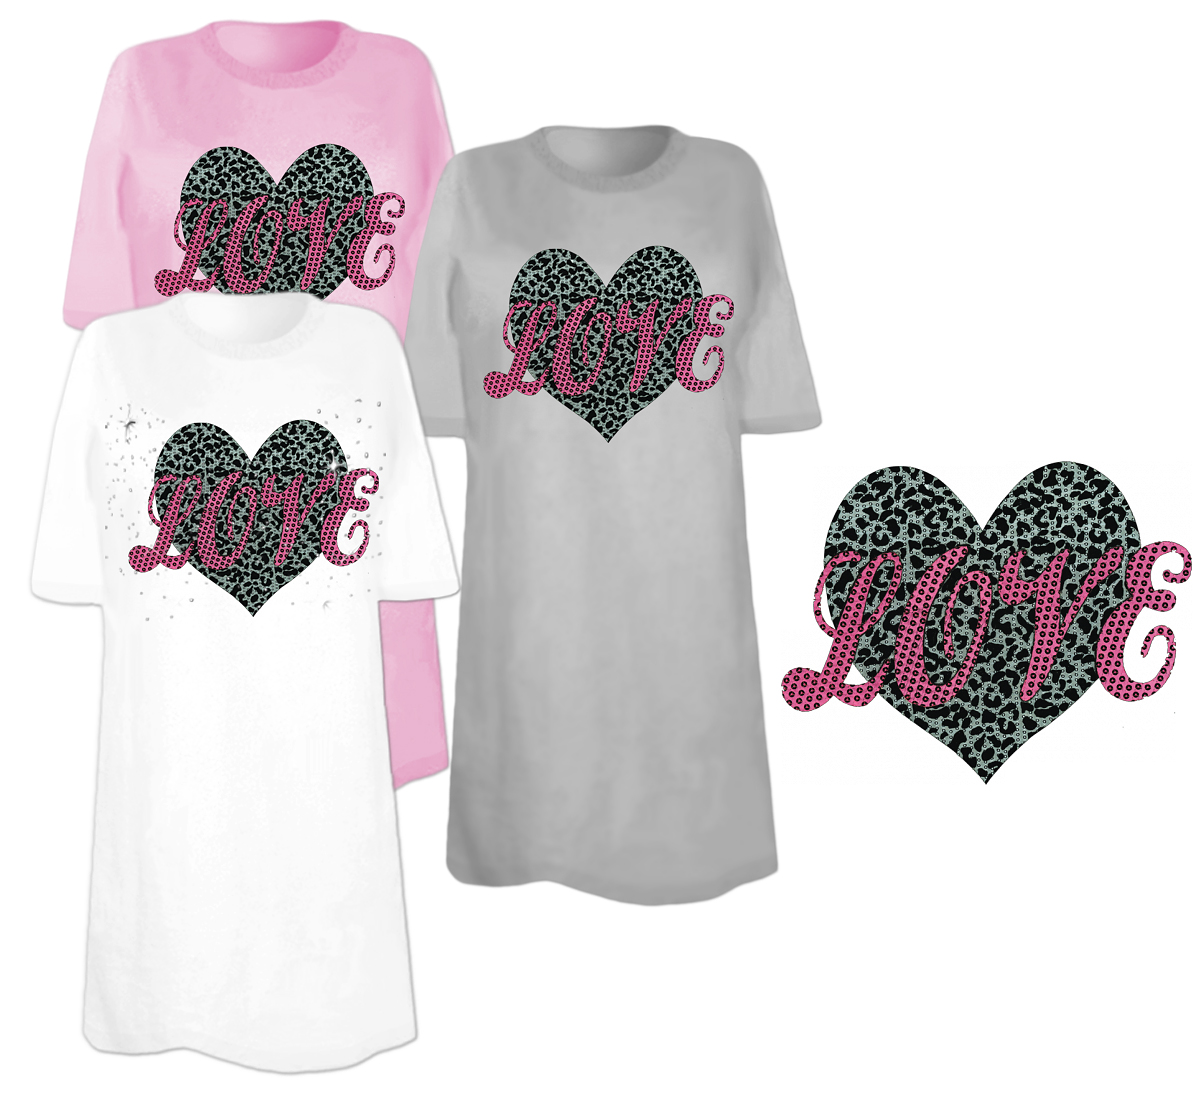 Sale Love Sequins Plus Size Supersize T Shirts S M L Xl